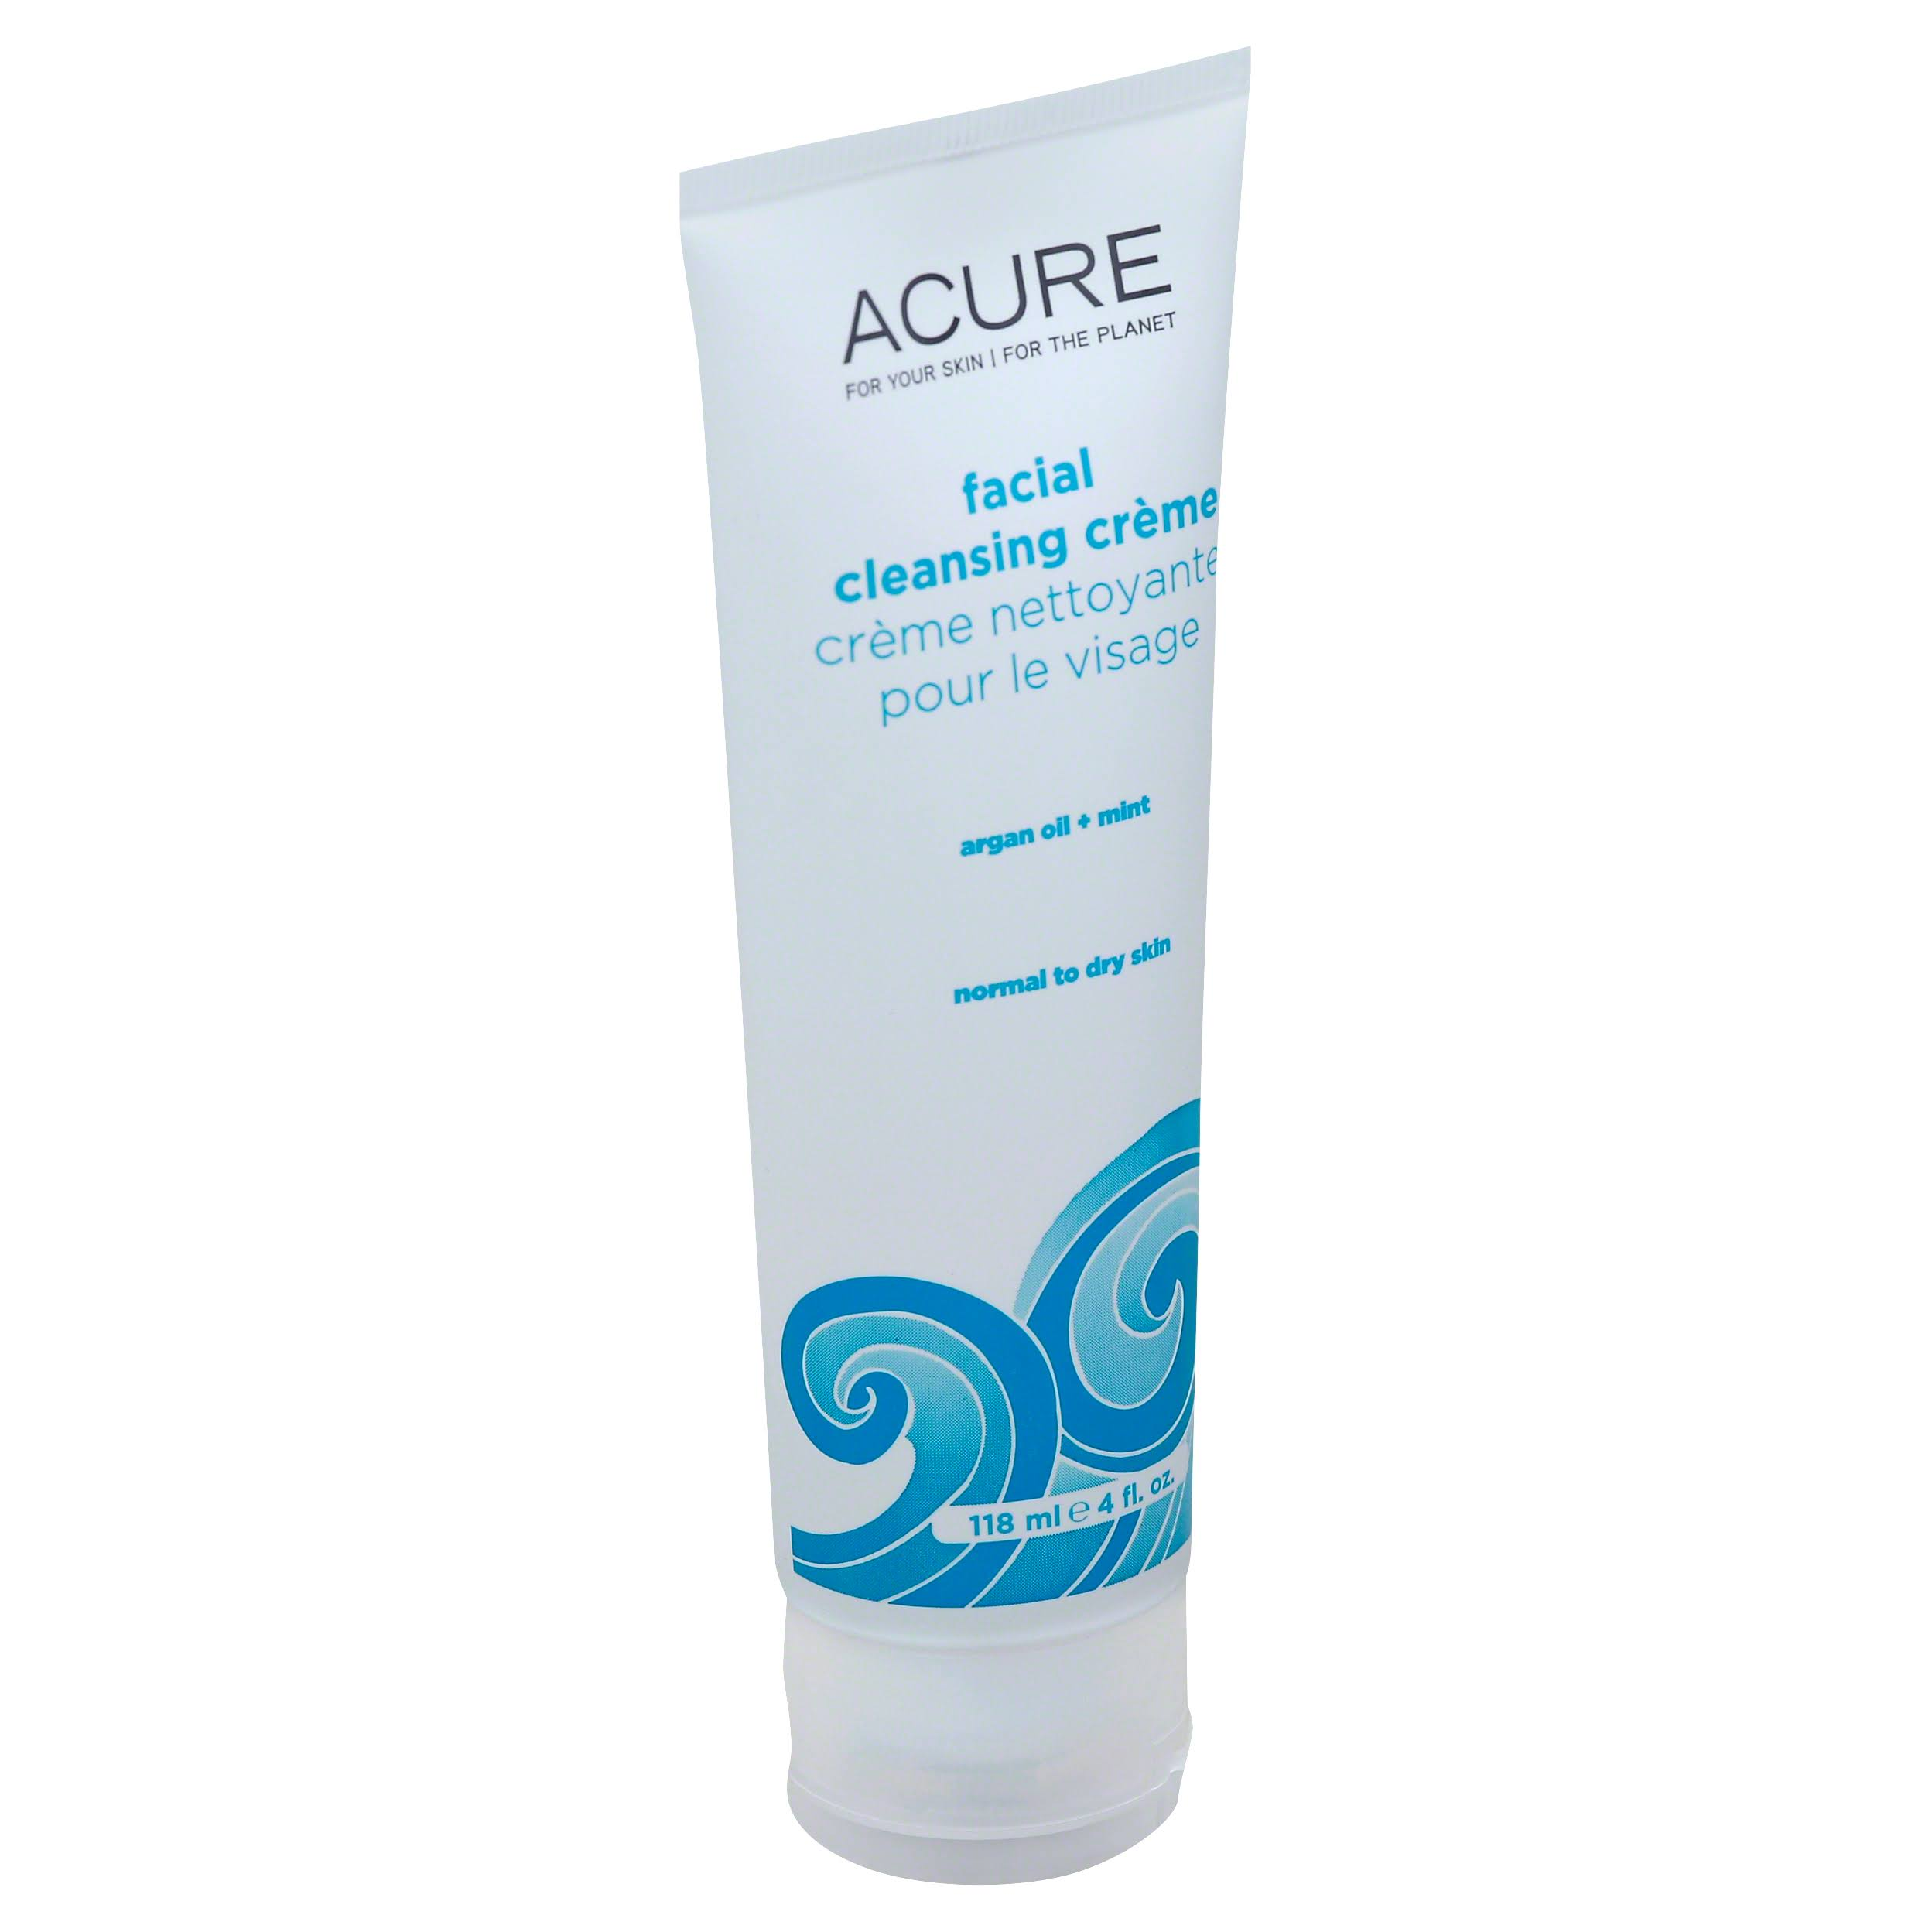 Acure Facial Cleansing Creme - 120ml